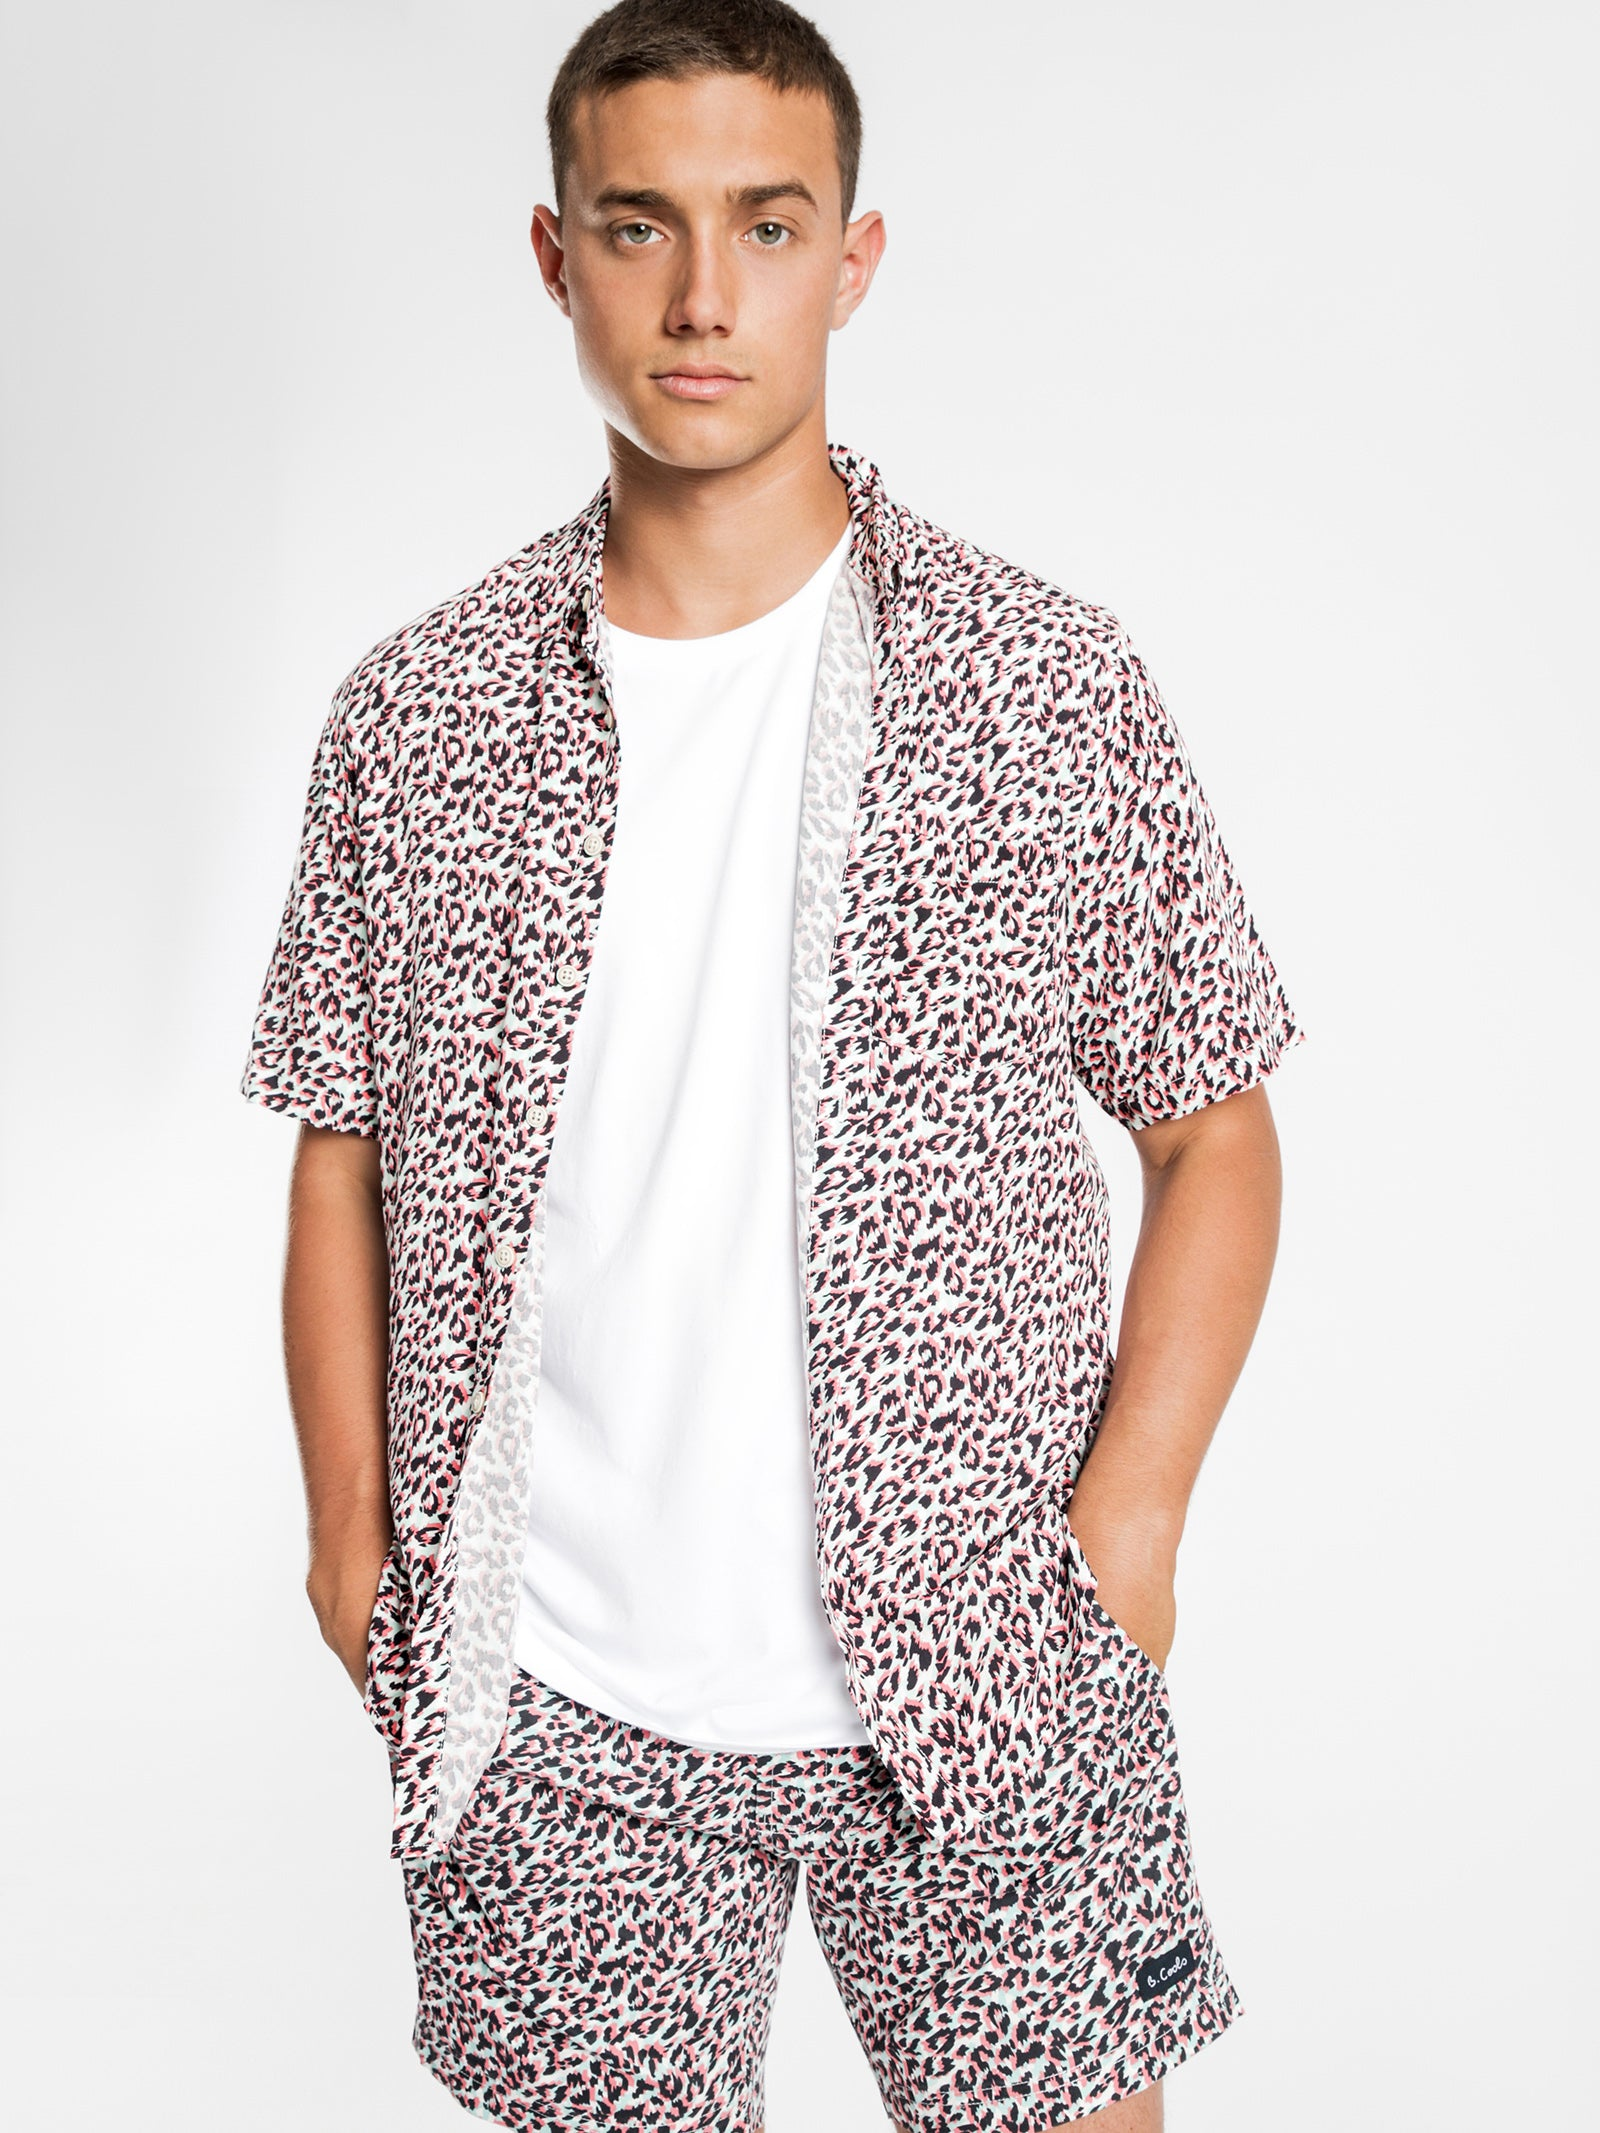 Holiday Short Sleeve Shirt in White Leopard